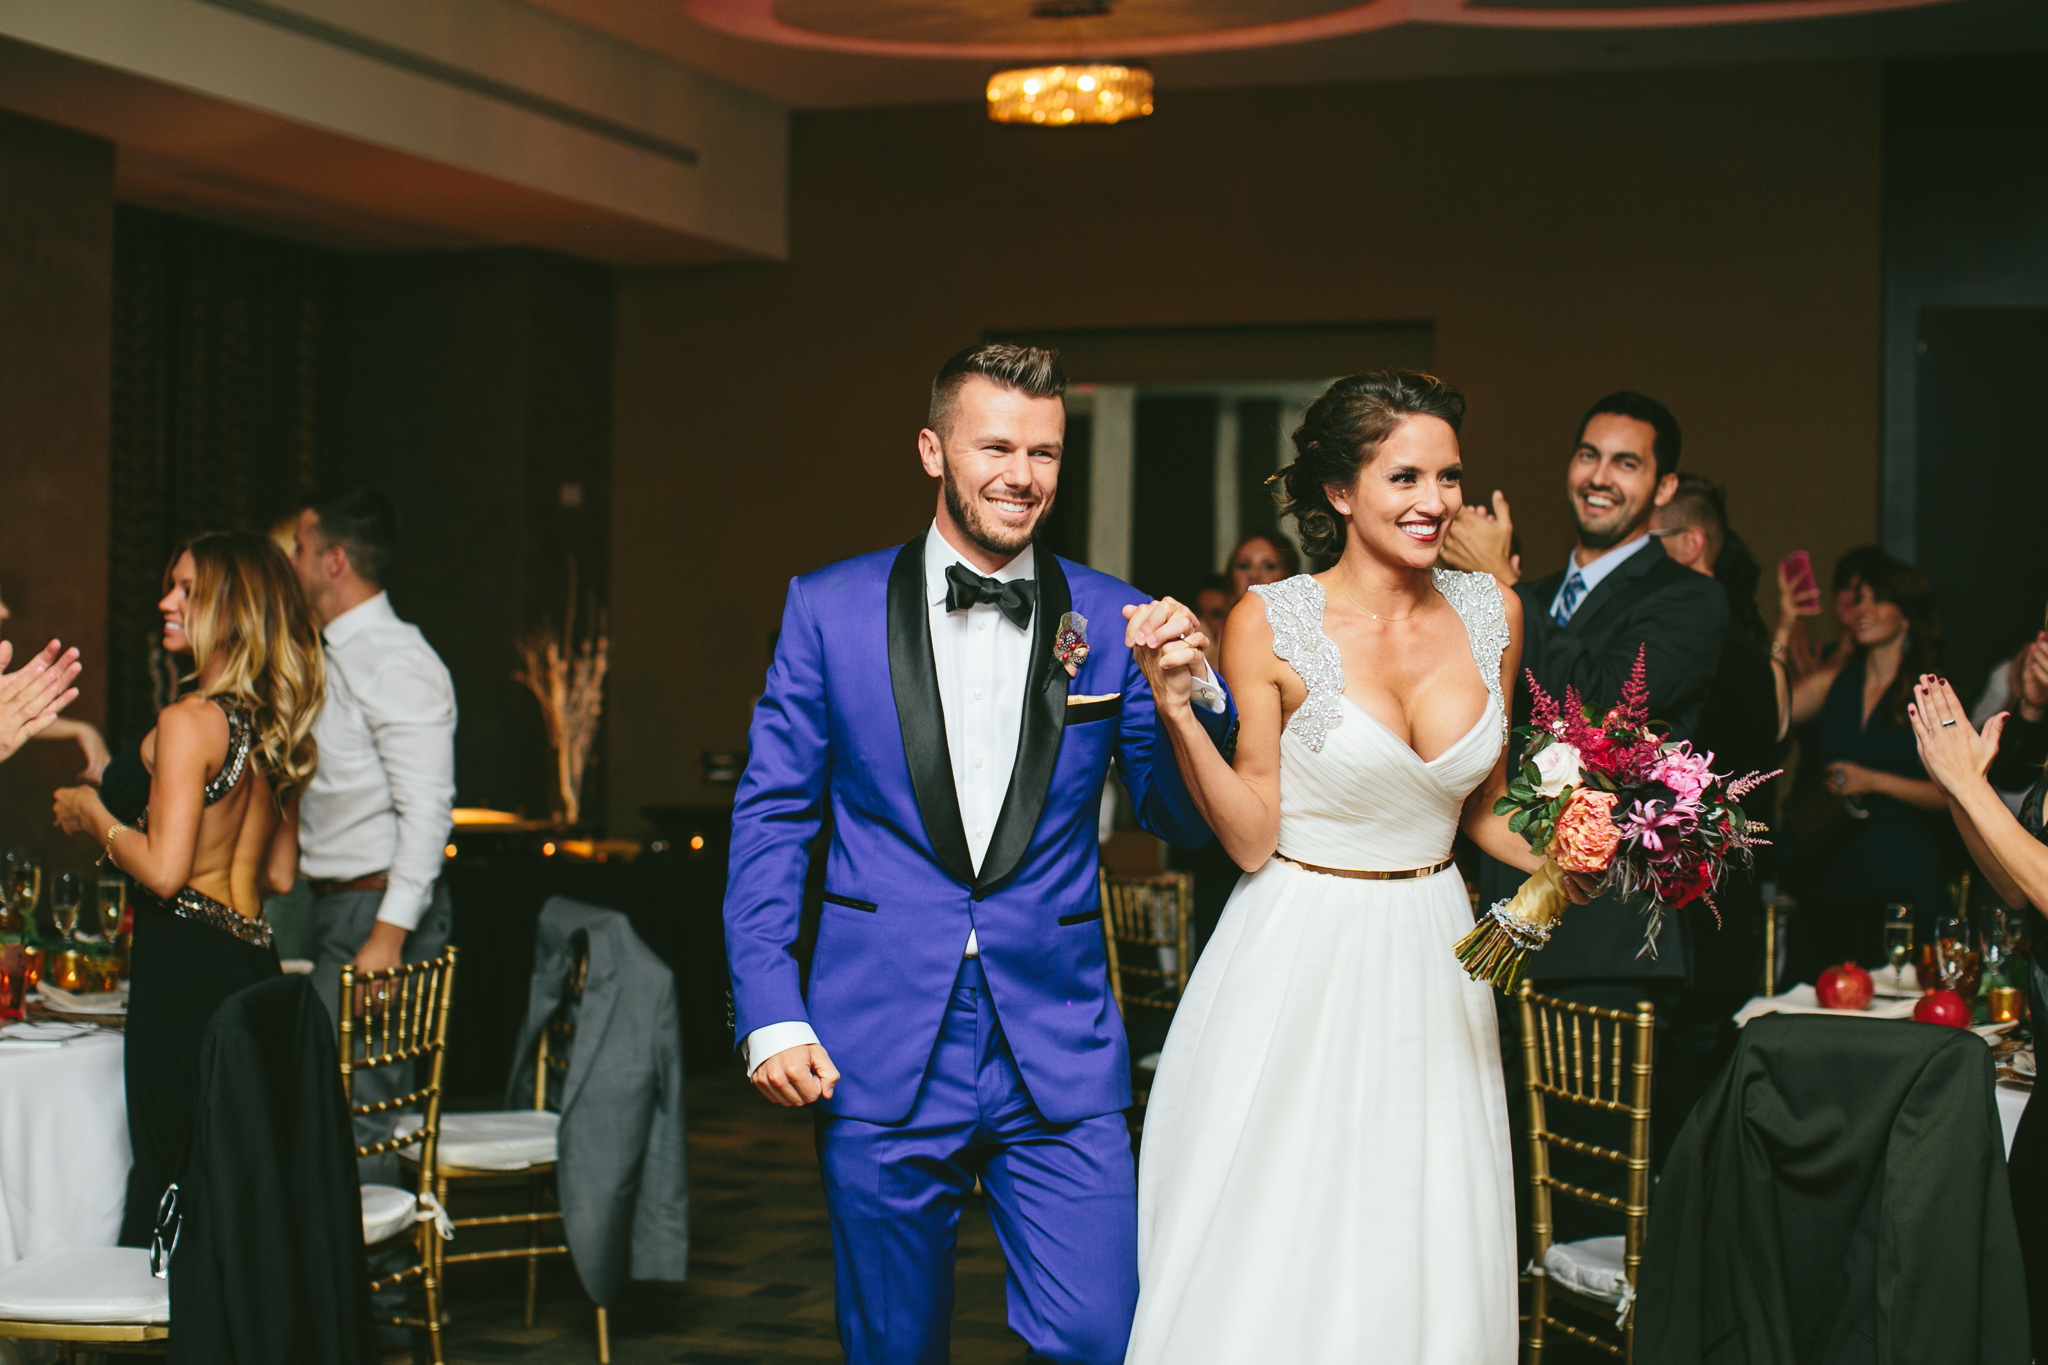 Brianna+Jeff-WEDDING_KellyBoitanoPhotography20151219_0144